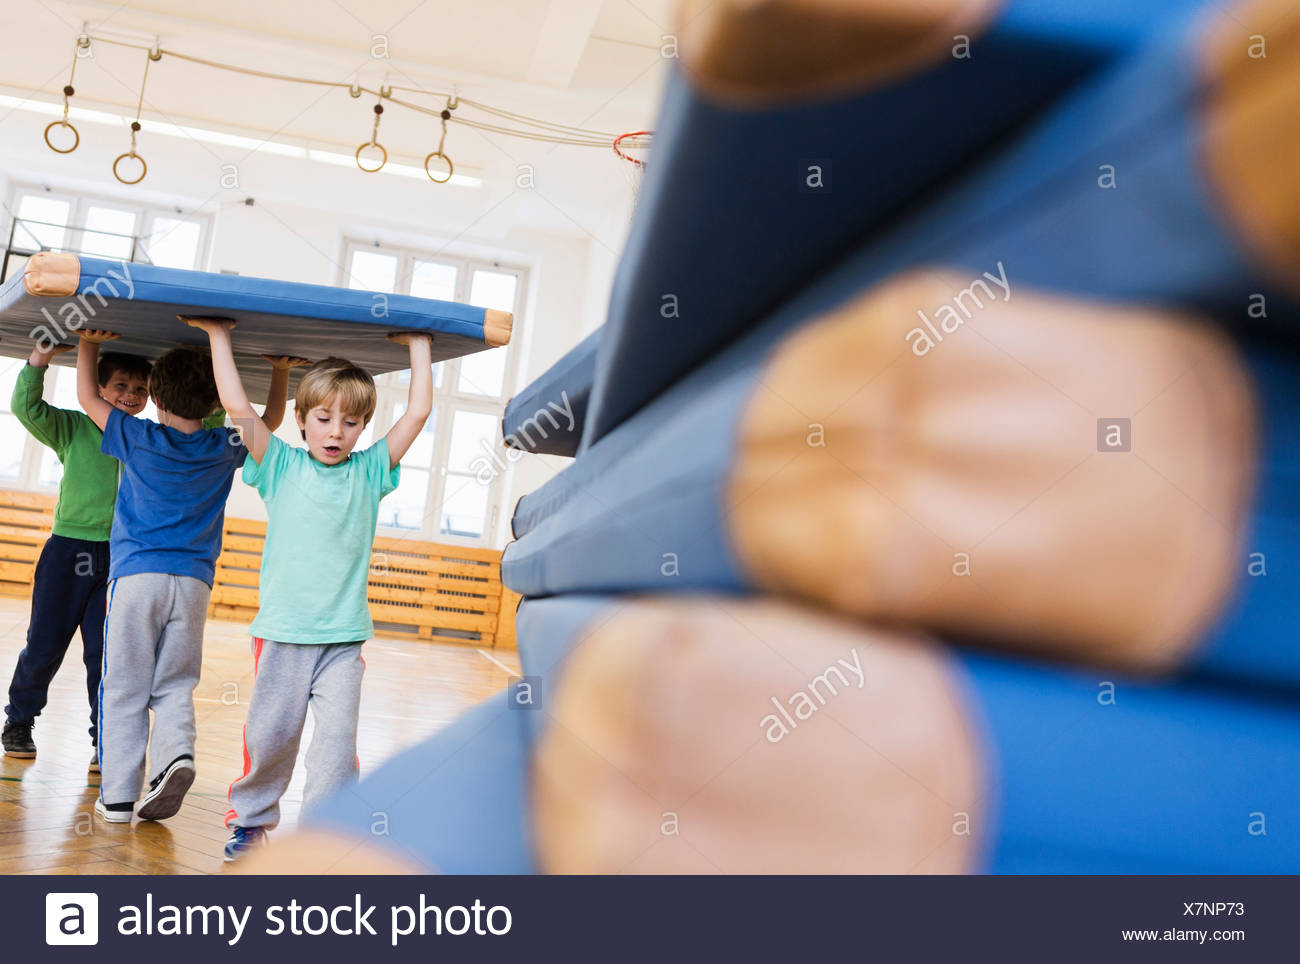 Boys carrying blue exercise mat above their heads - Stock Image